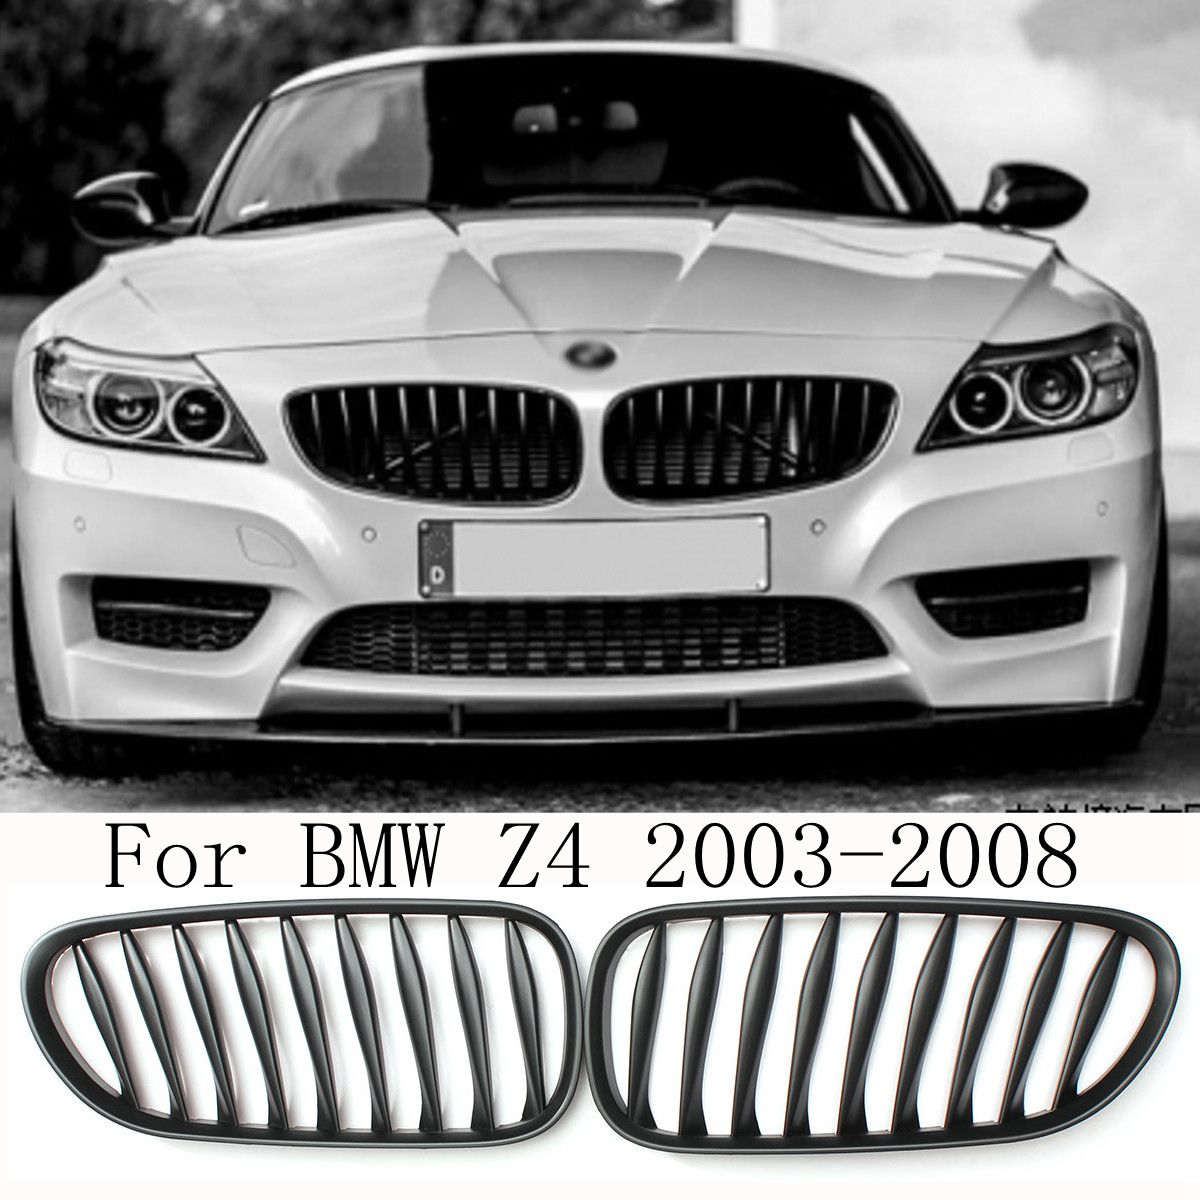 Auto Racing Grills Pair Matte Black Kidney Grille for BMW Z4 2003 2004 2005 2006 2007